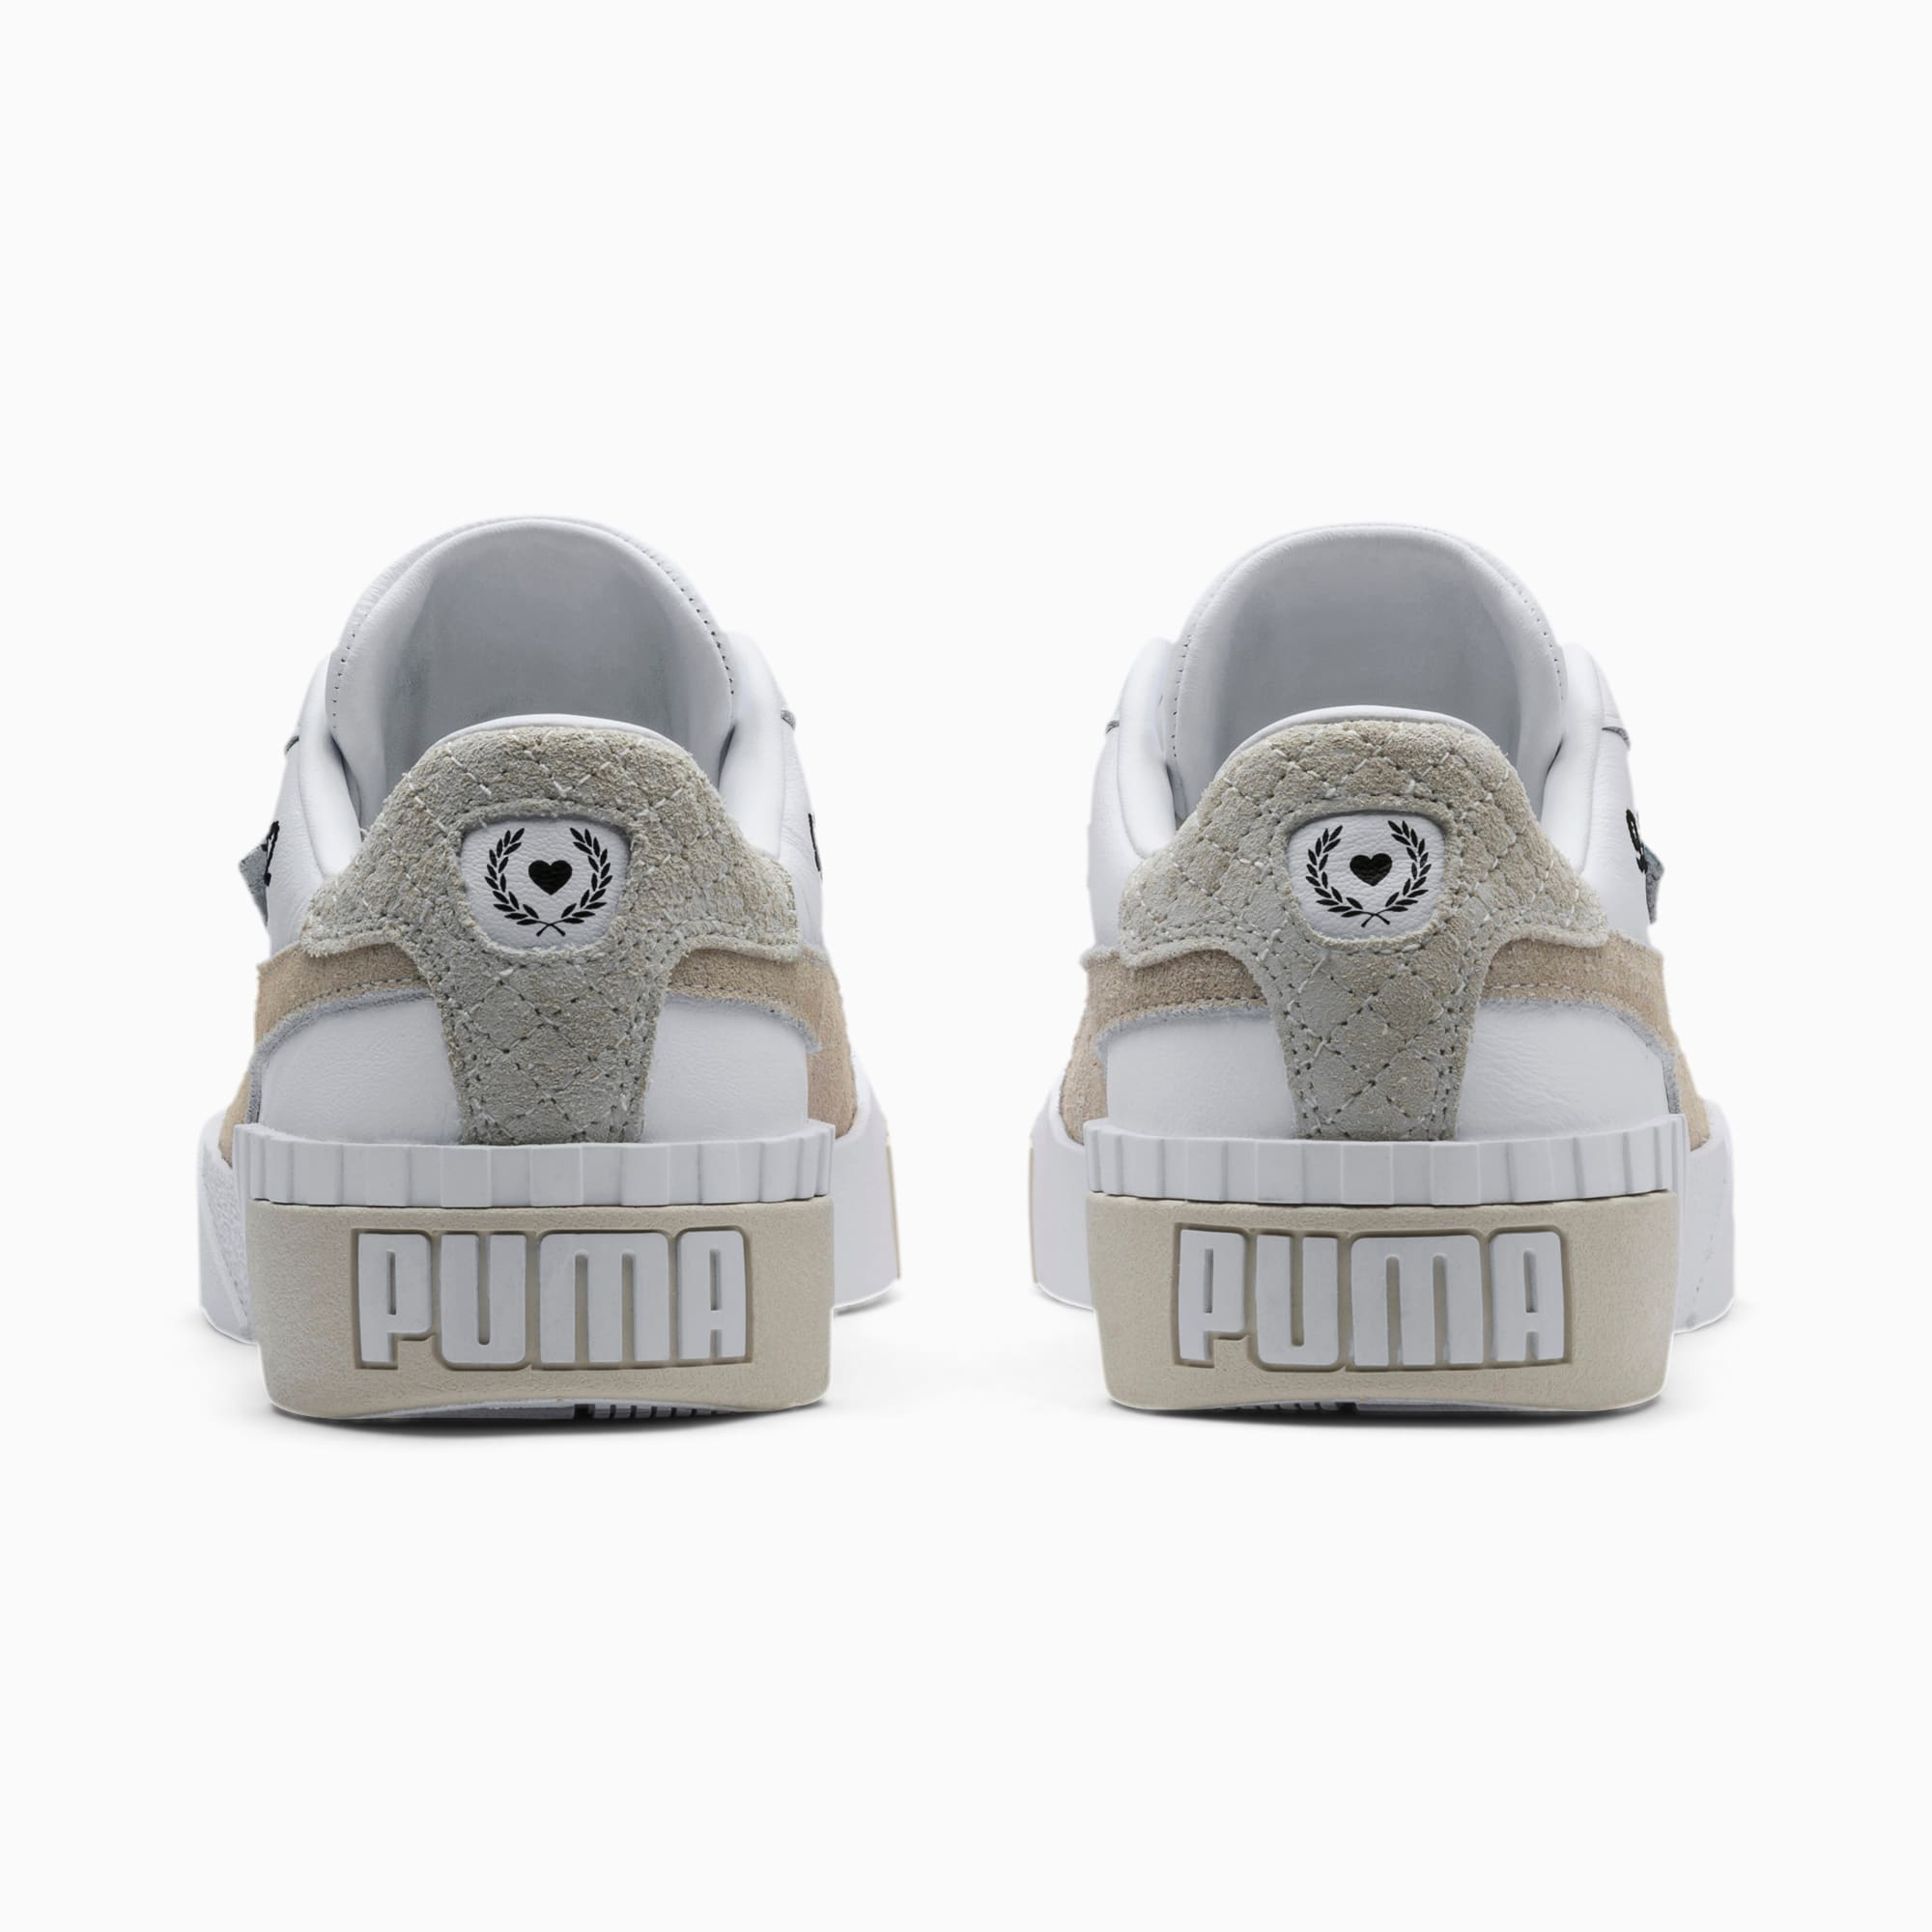 SG x PUMA Cali Leather Suede Women's Sneakers